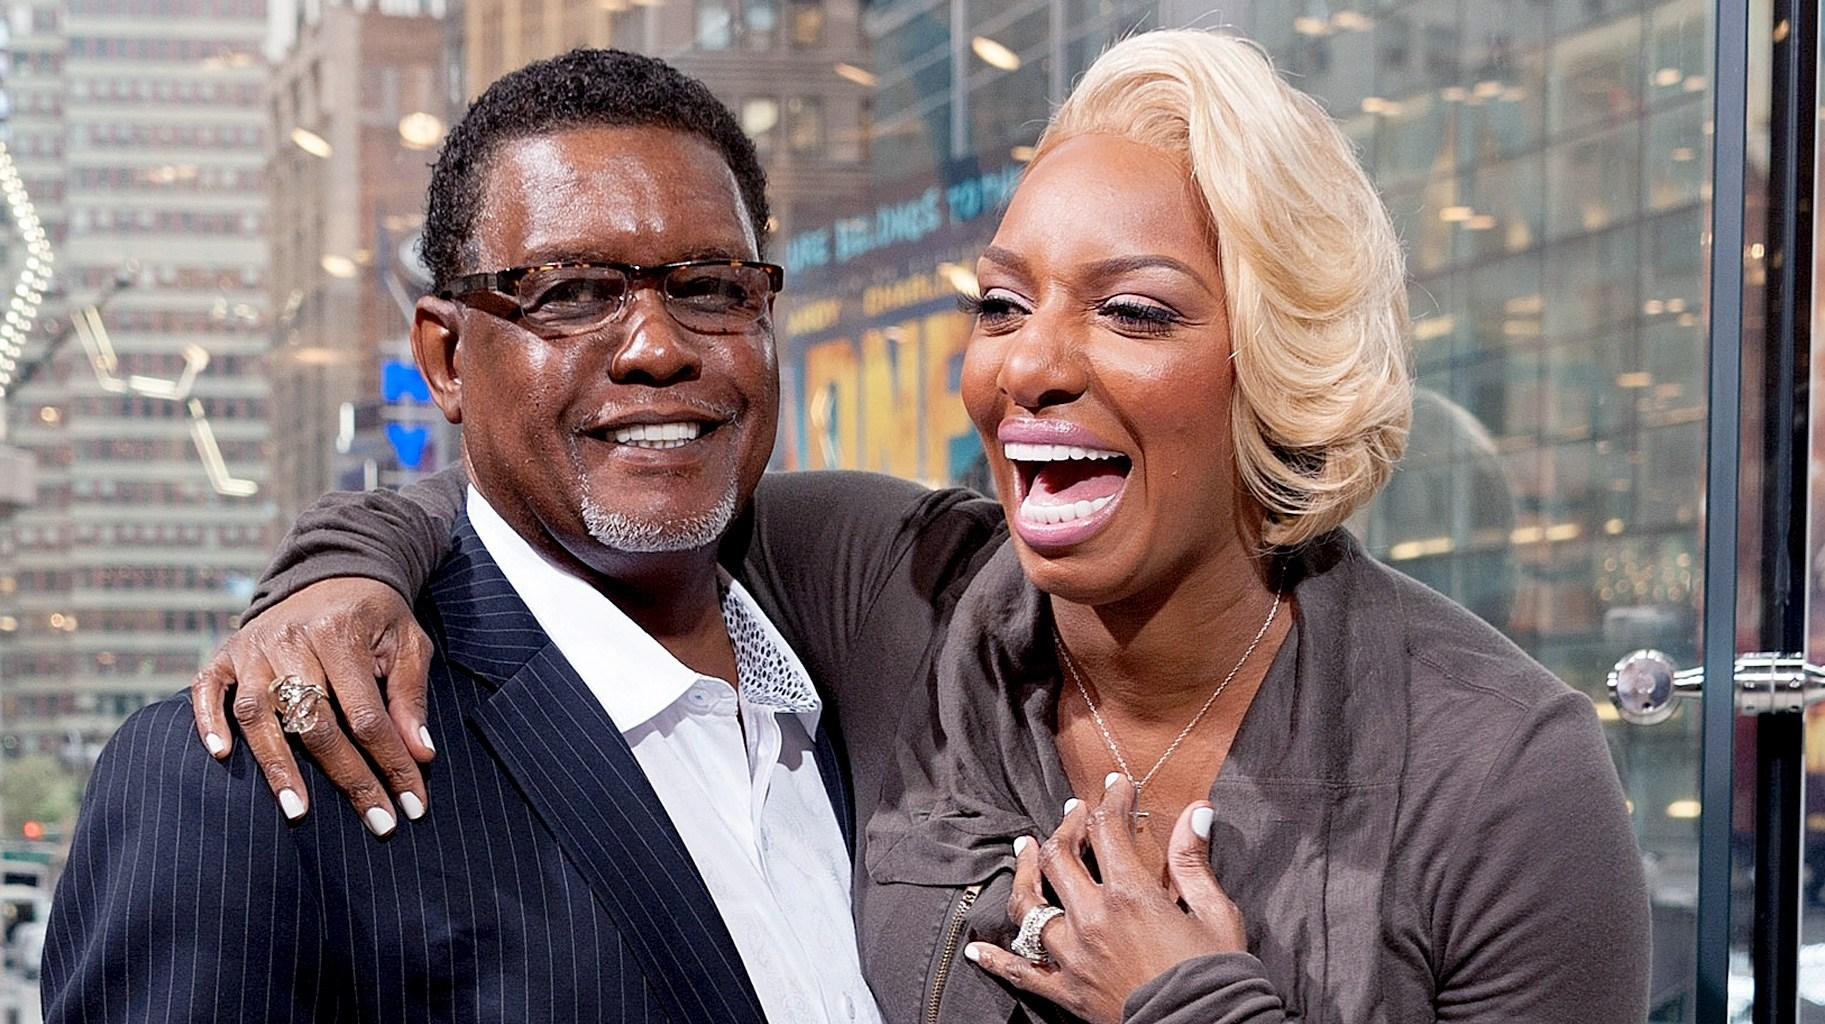 NeNe Leakes Claps Back At Haters Accusing Her Of Not Taking Good Care Of Her Husband Gregg Leakes